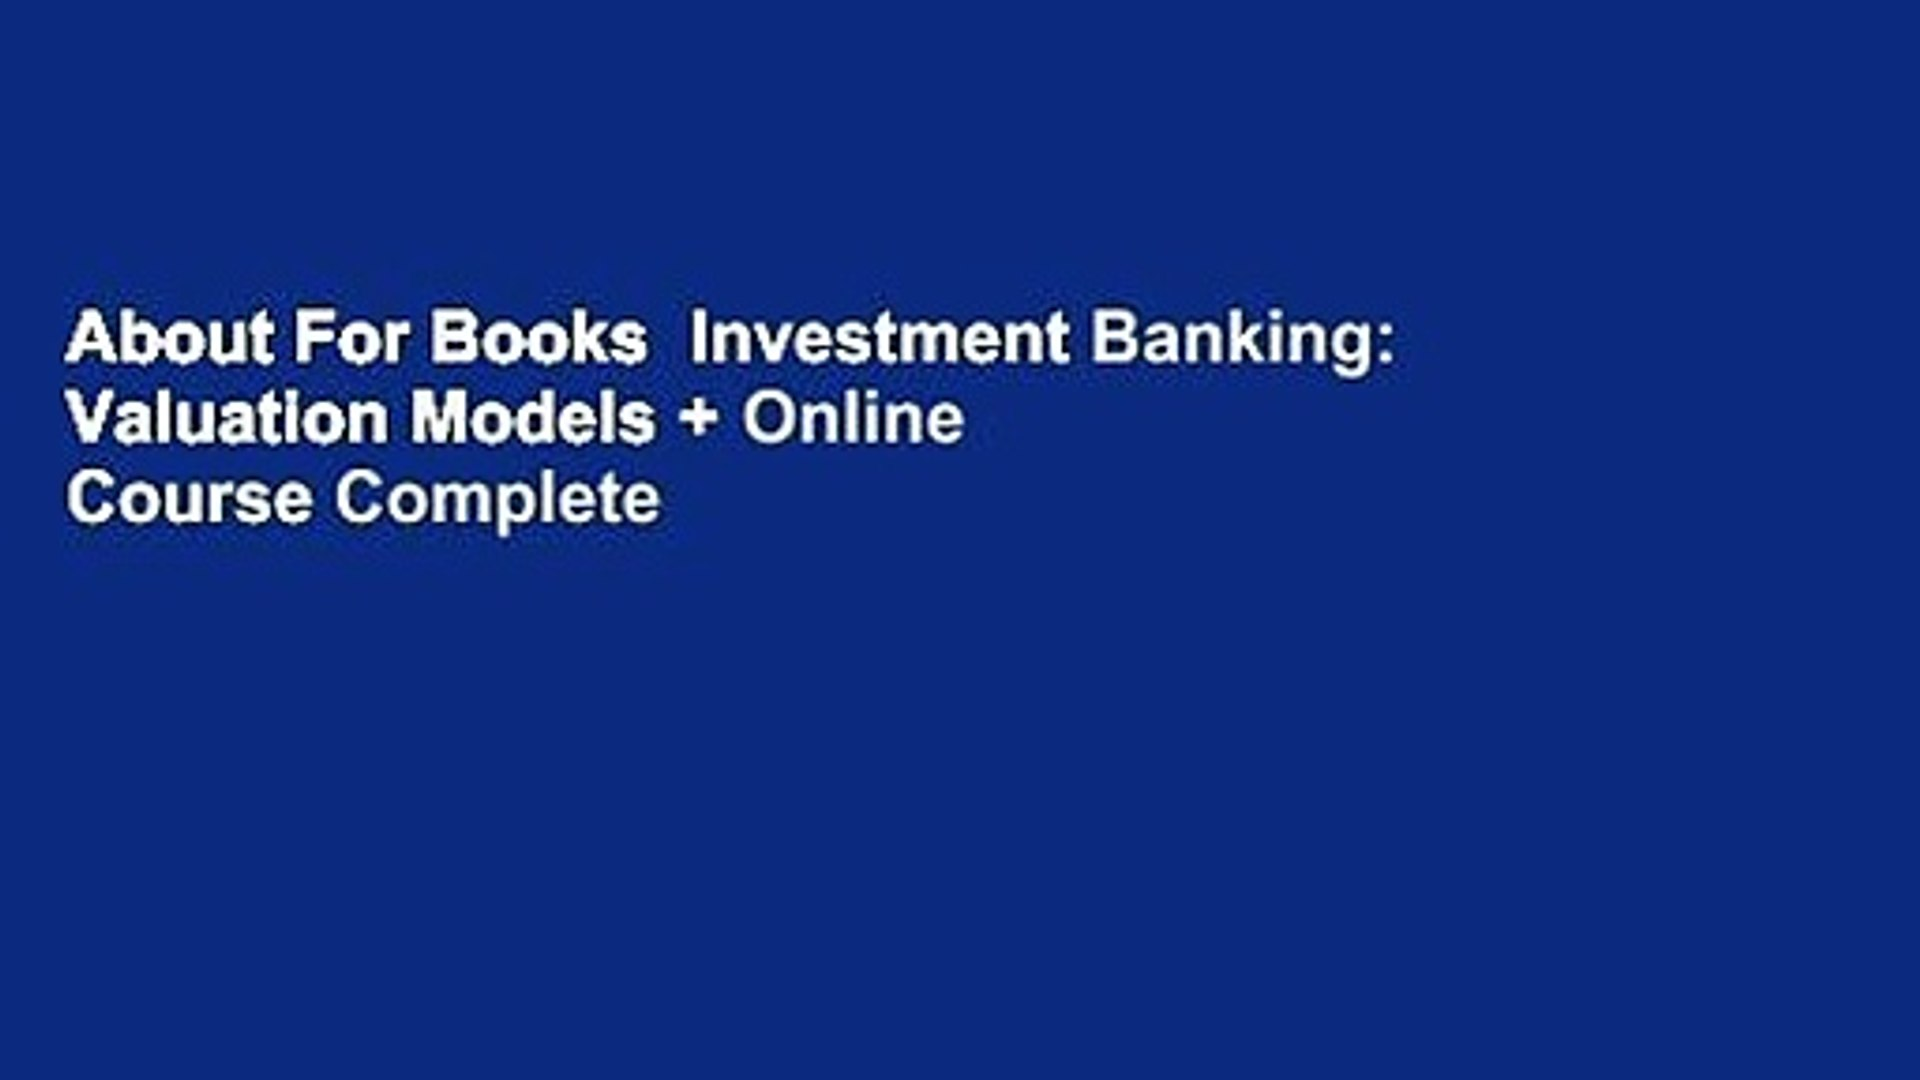 About For Books  Investment Banking: Valuation Models + Online Course Complete